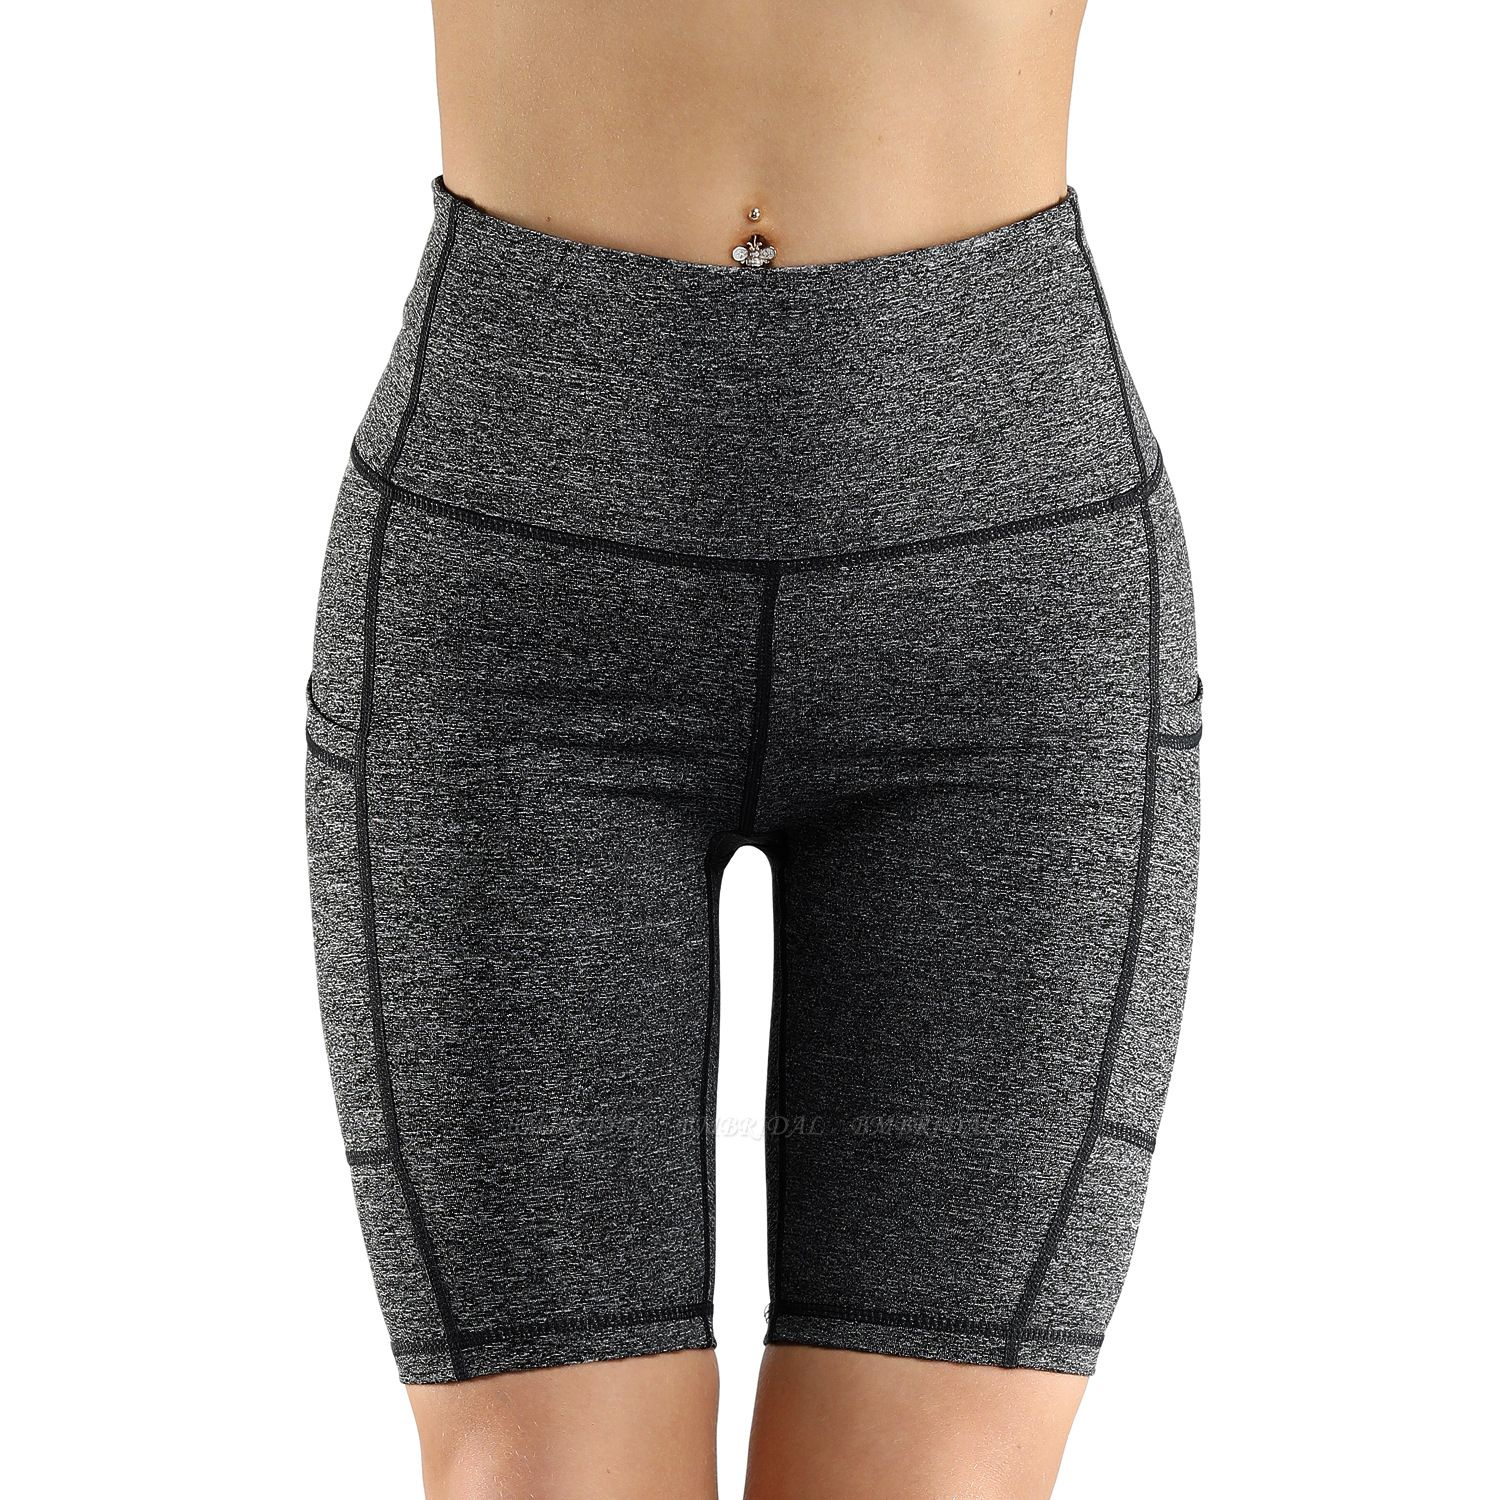 BMbridal Women Sports Yoga Shorts Ladies' printed Camouflage Pockets Hip-tightening Running Fitness Yoga Trouser Sport Fitness Shorts